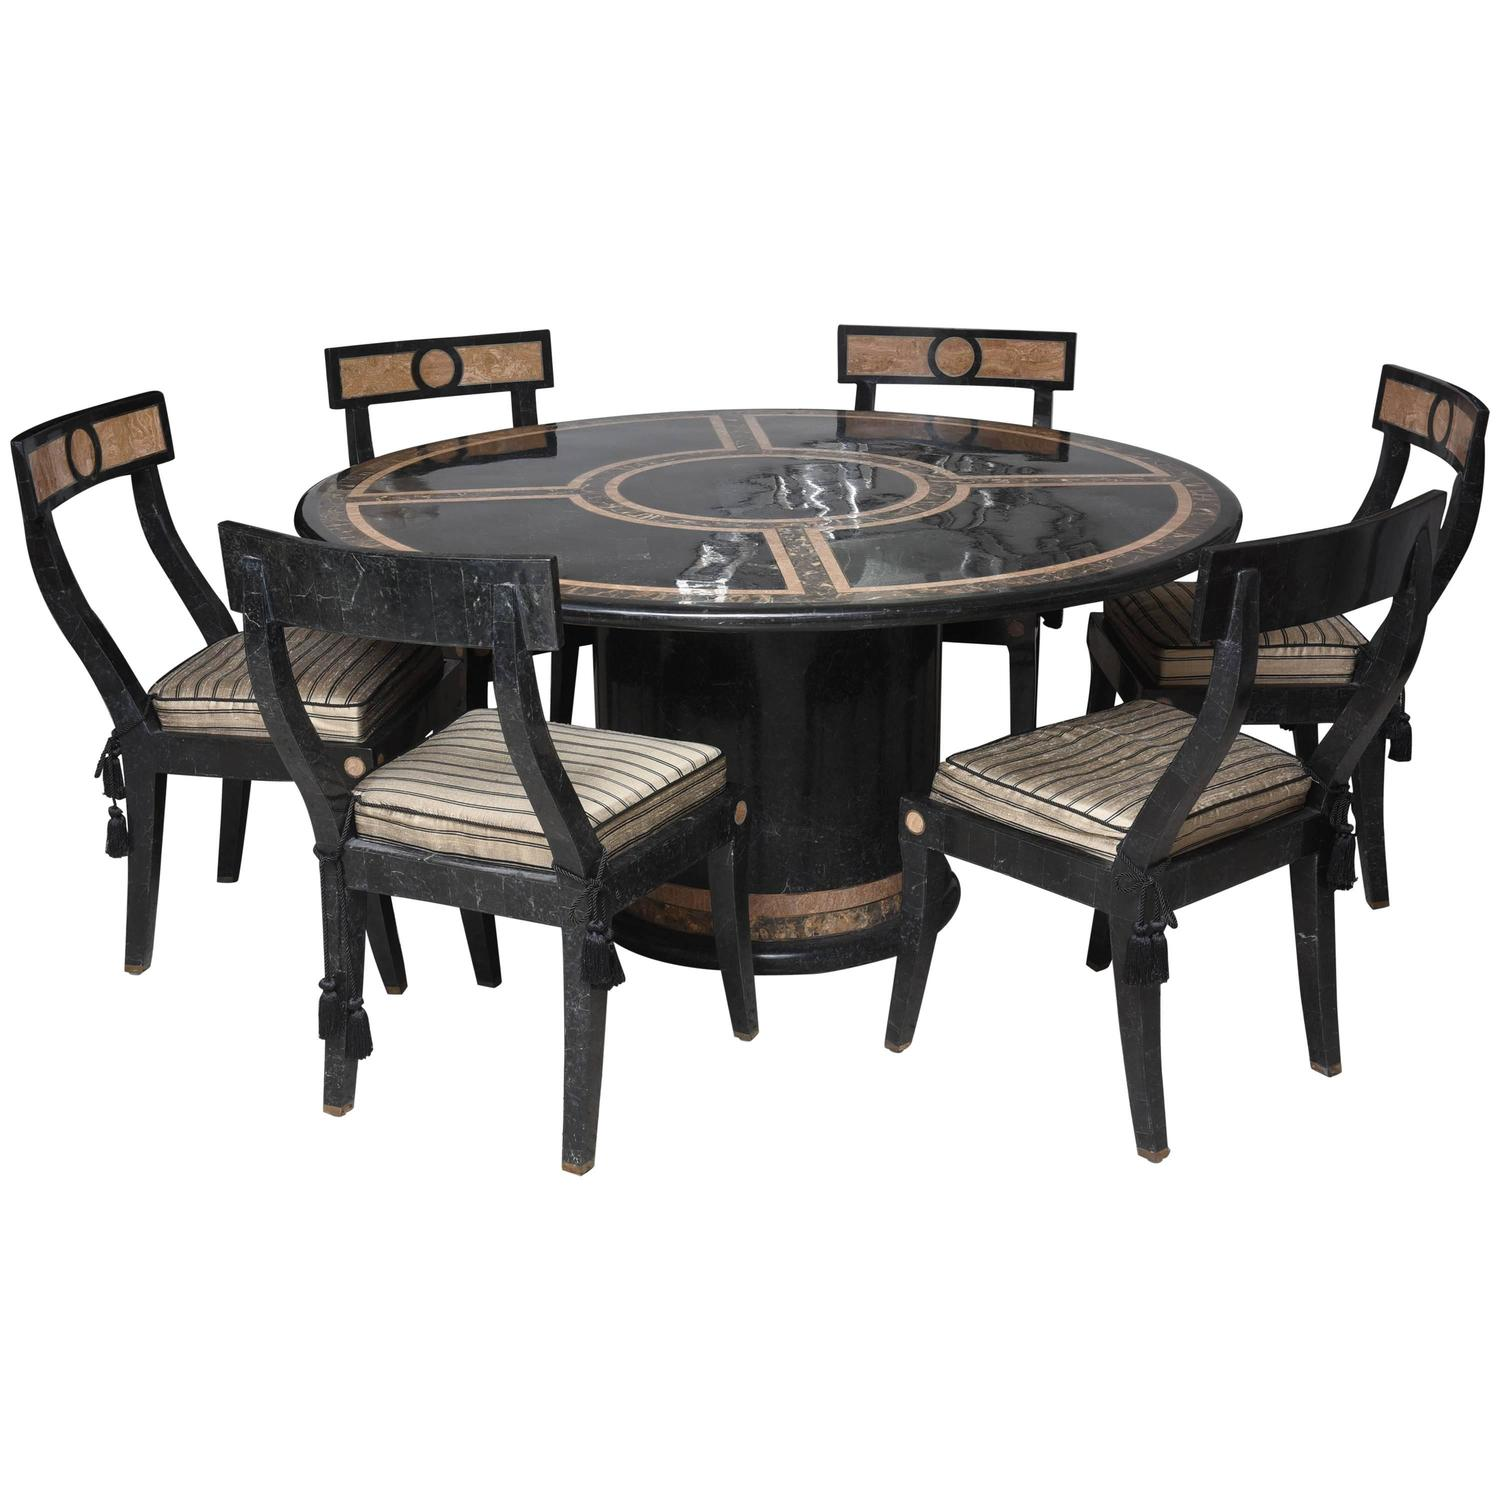 hollywood regency style dining table and chairs in the style of maitland smith at 1stdibs. Black Bedroom Furniture Sets. Home Design Ideas